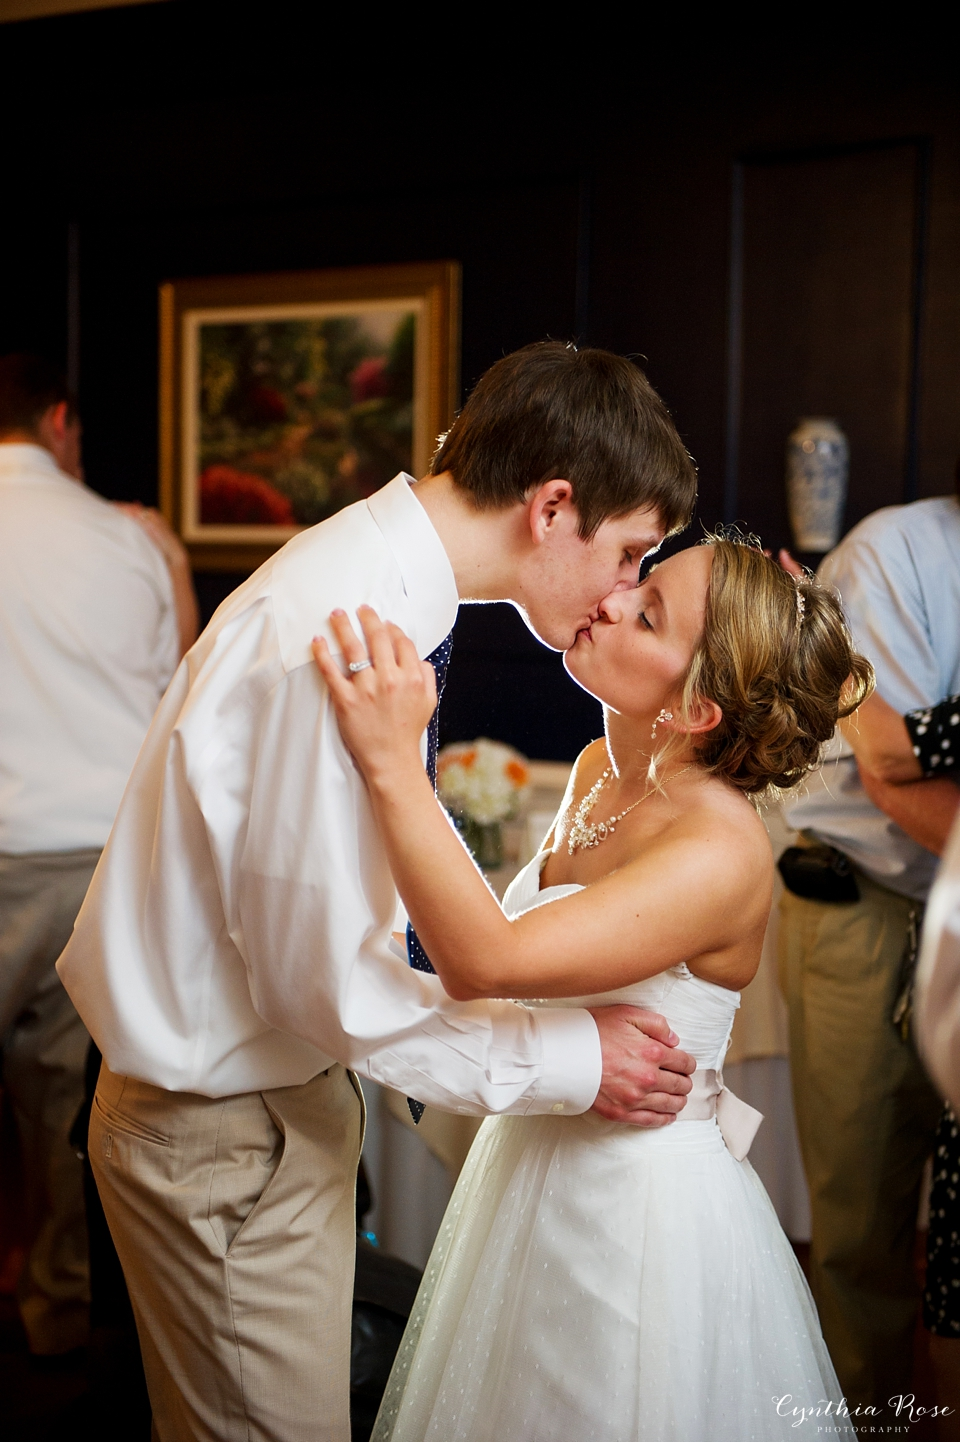 virginiaweddingphotographer_0110.jpg